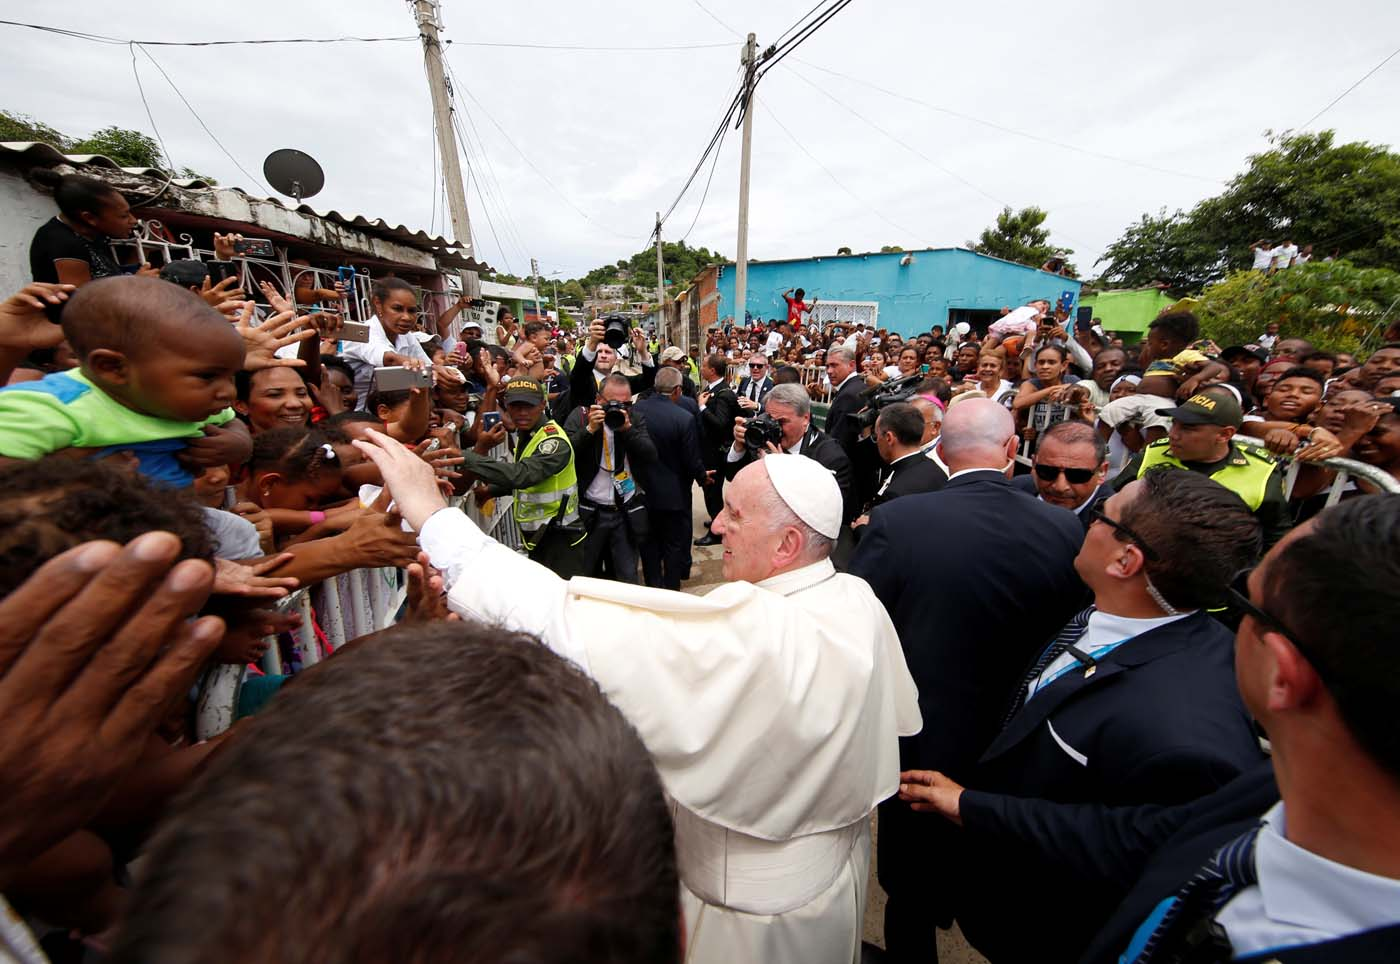 Pope Francis greets people in a neighbourhood in Cartagena, Colombia September 10, 2017. REUTERS/Stefano Rellandini